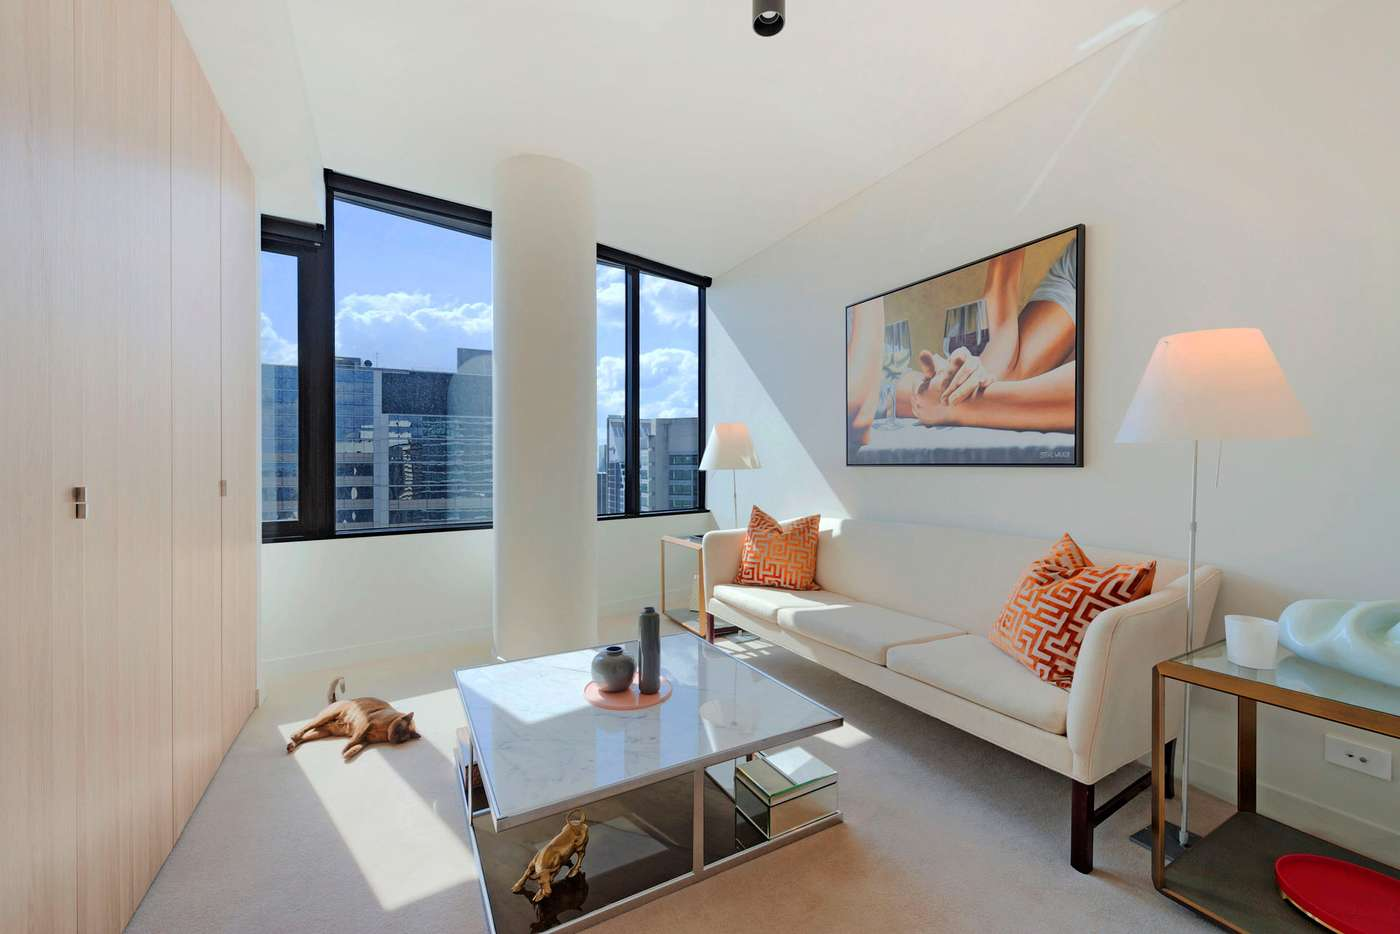 Sixth view of Homely apartment listing, 3302/38 York Street, Sydney NSW 2000